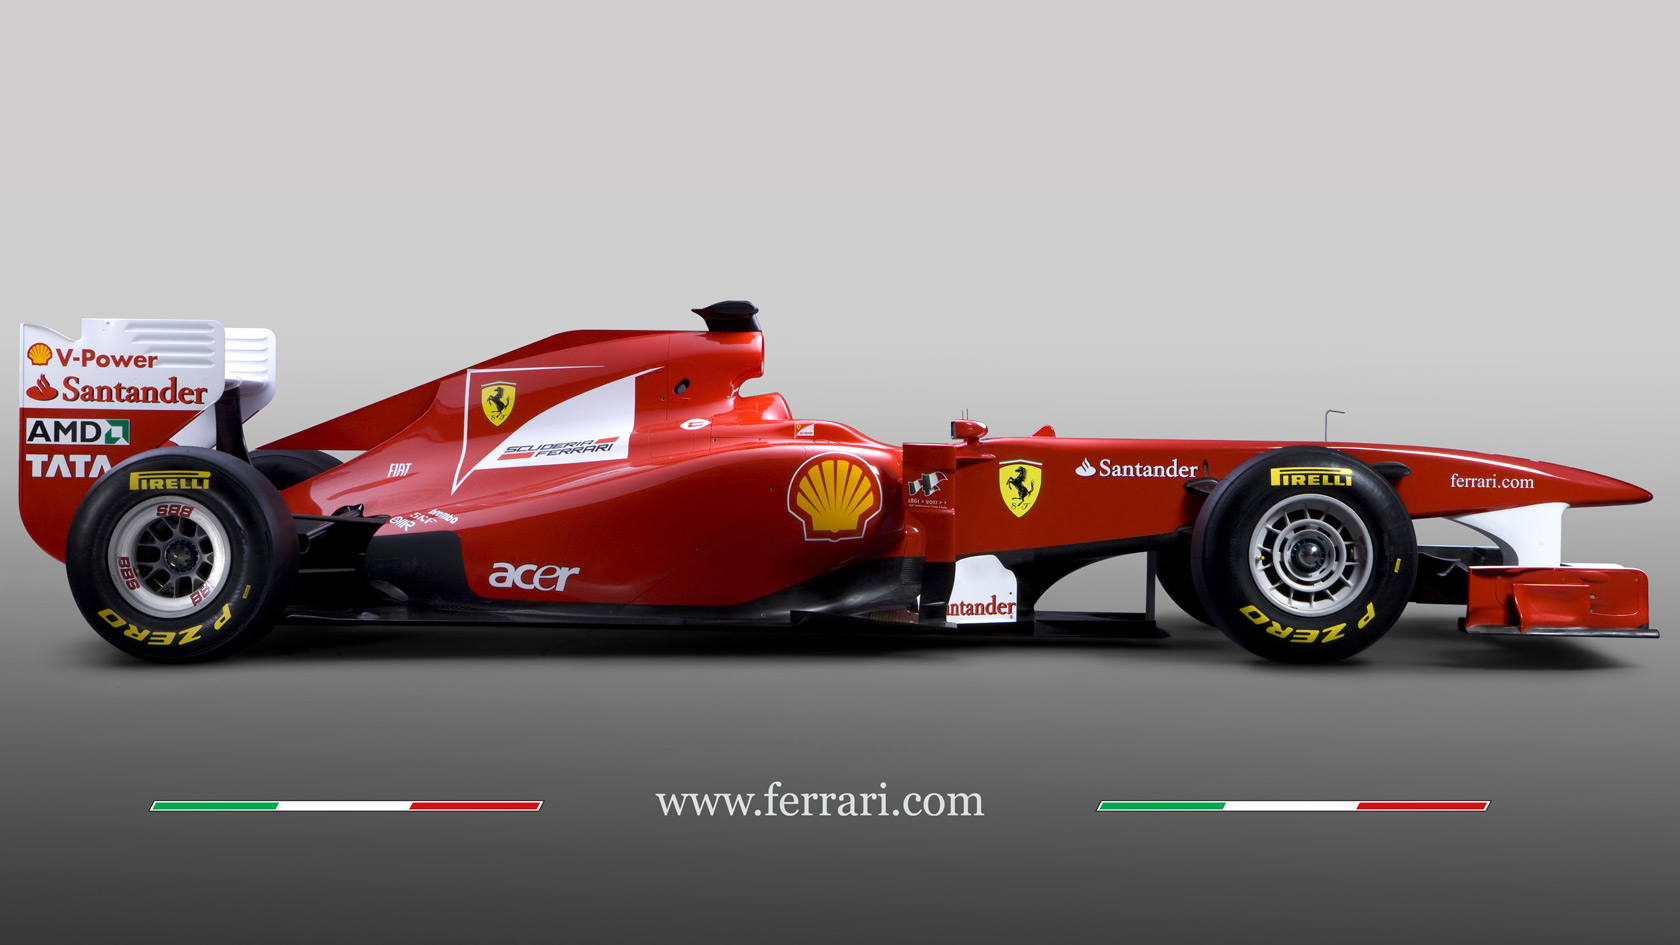 New Ferrari Livery Is Blue And Orange Formula One Colours